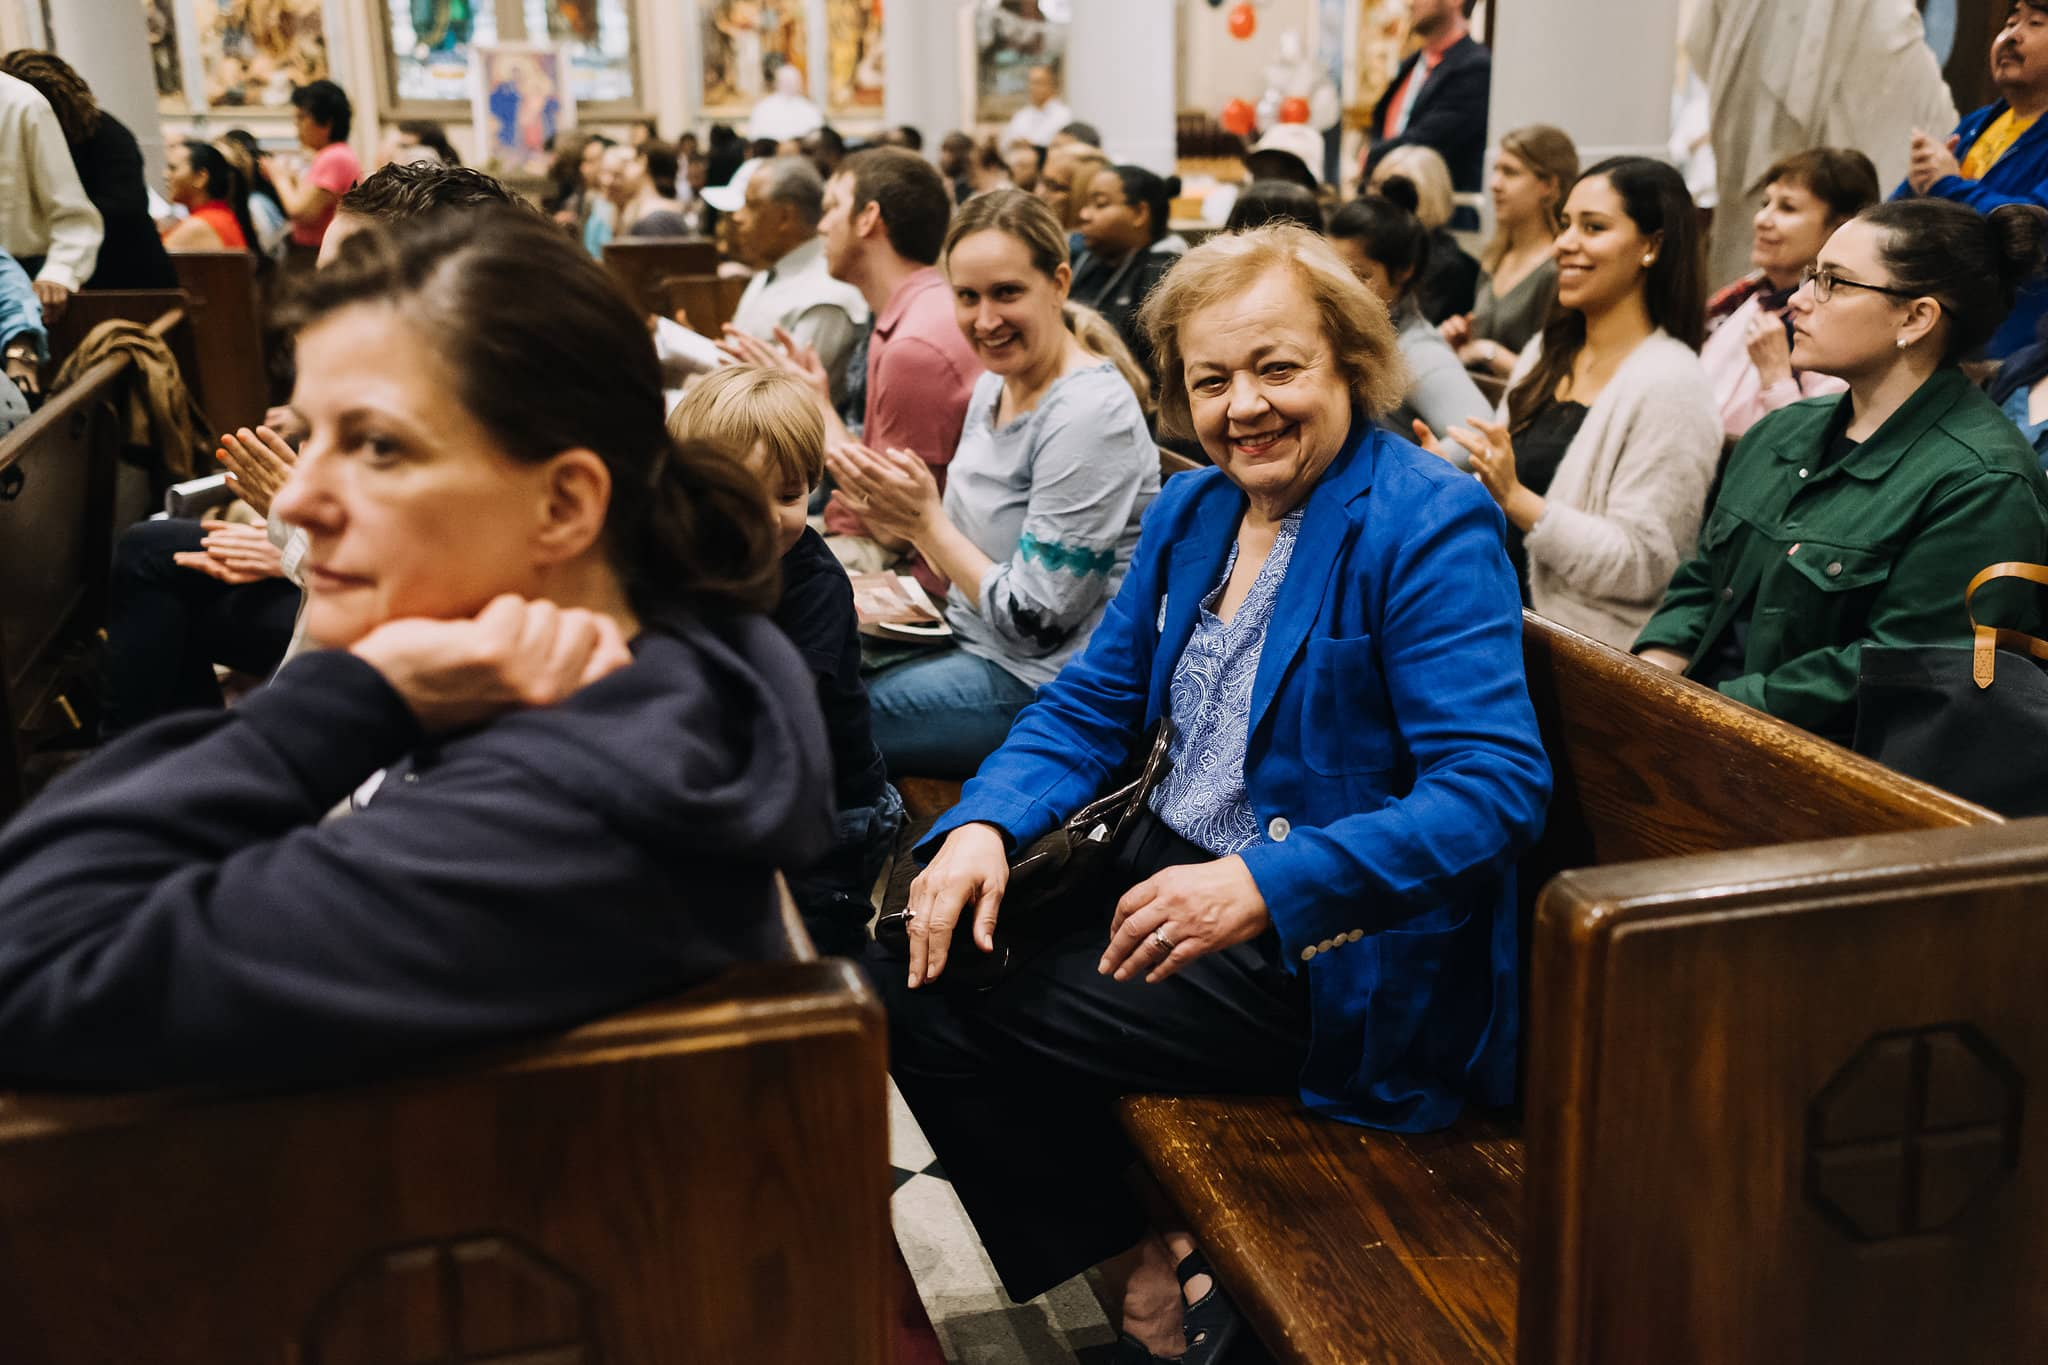 community-diversity-seniors-mass-st-francis-de-sales-church-new-york-city.jpg